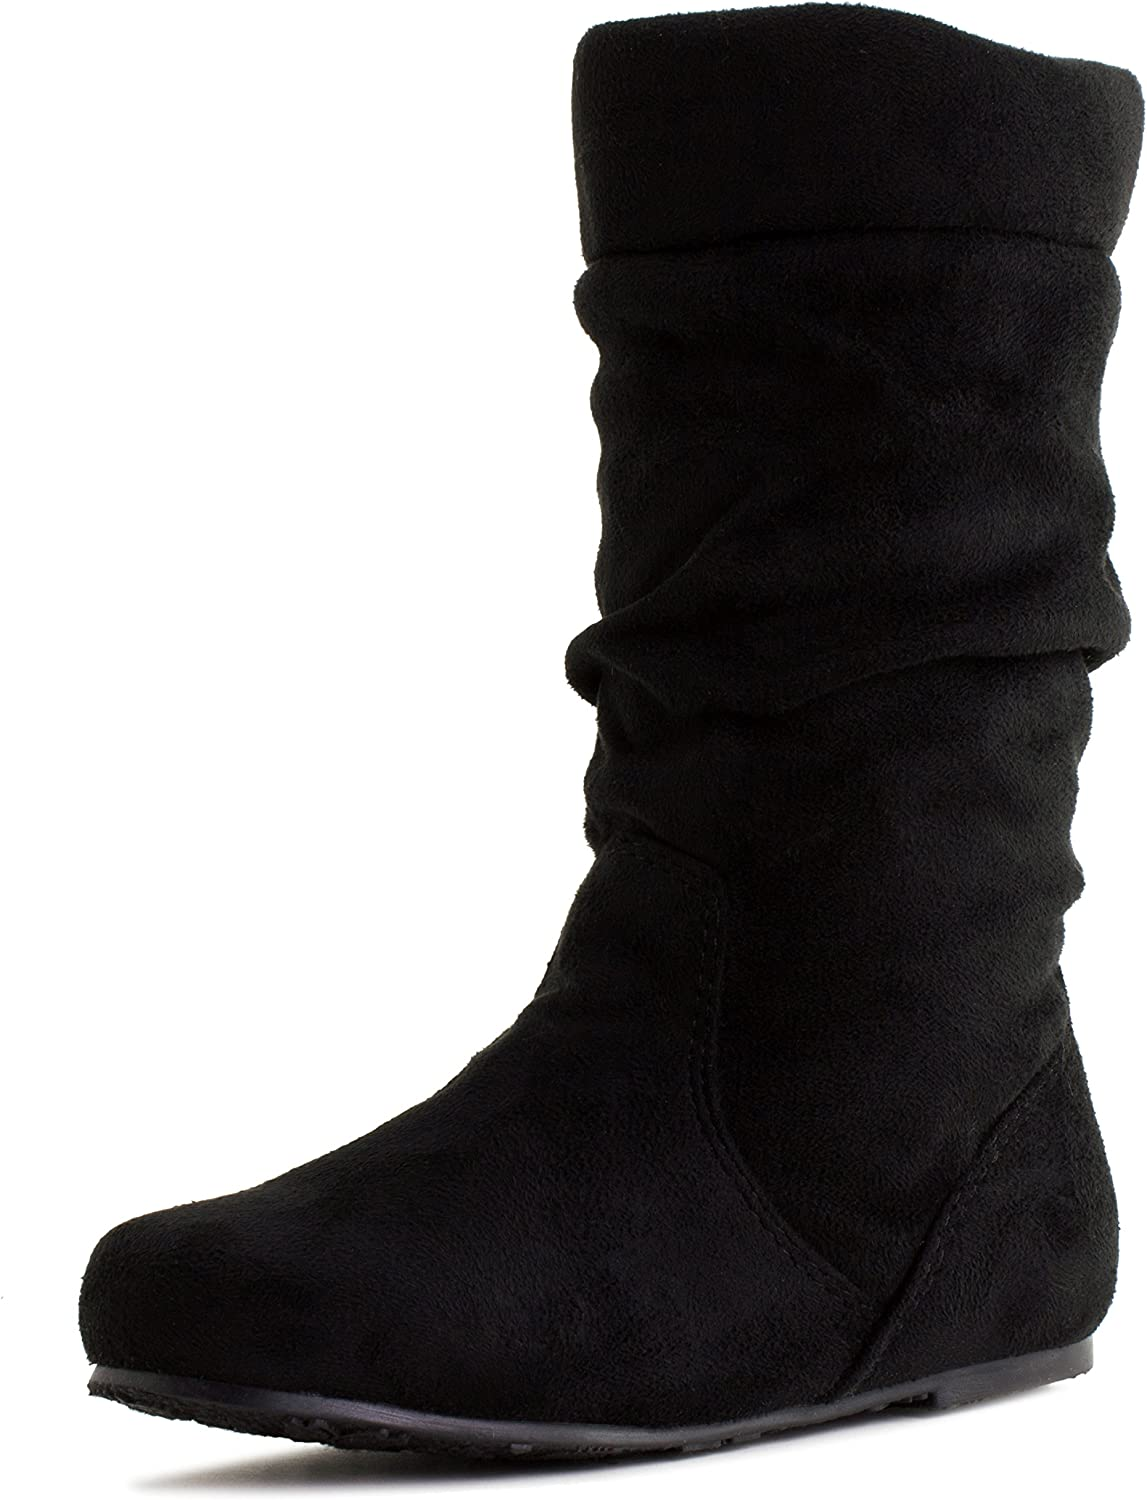 Link Womens 11 Inch Faux Suede Ankle Boots Adults